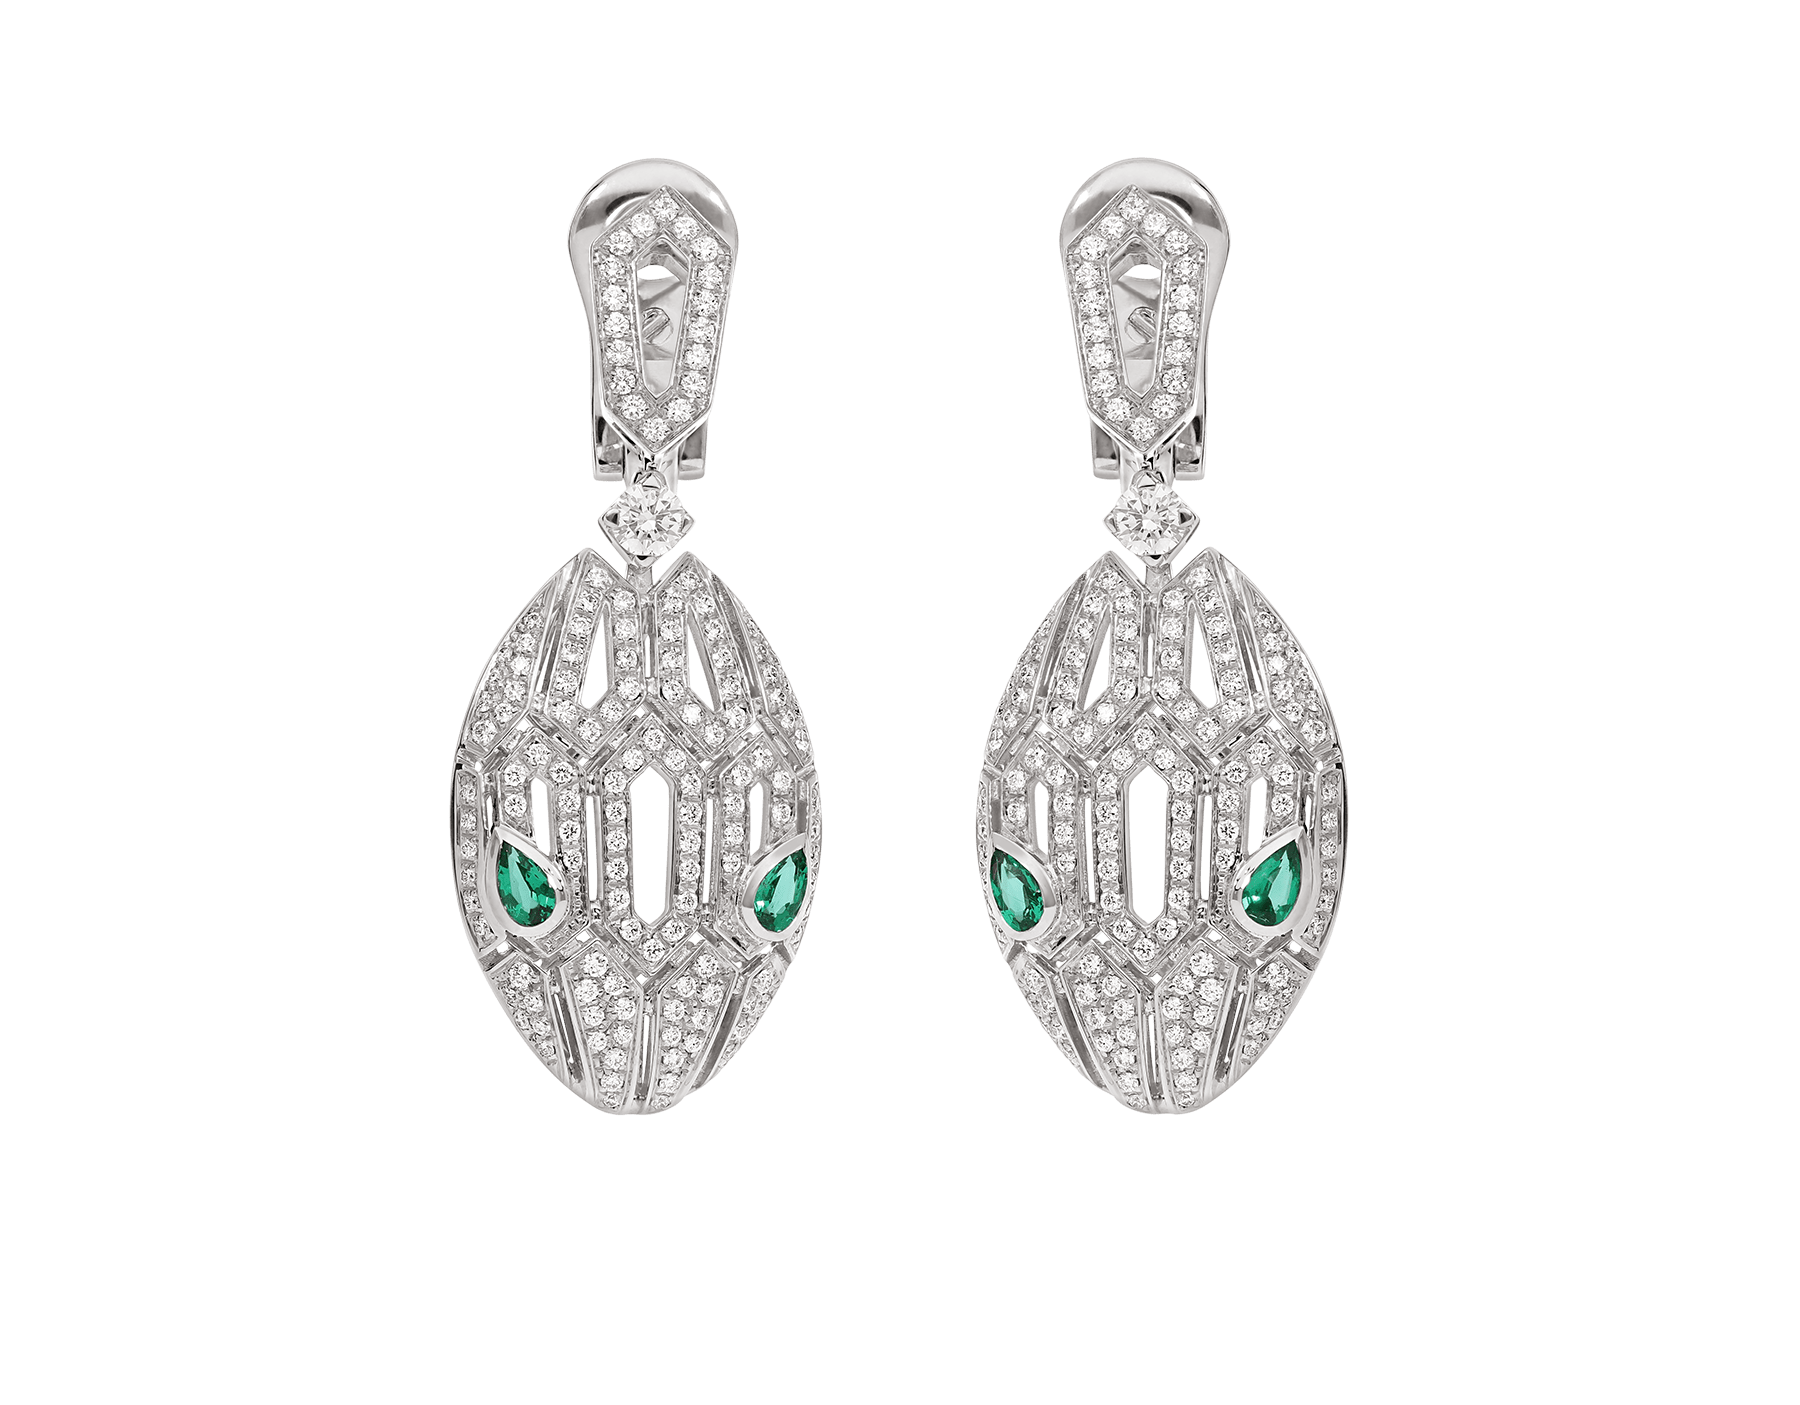 Serpenti earrings in 18 kt white gold, set with emerald eyes and full pavé diamonds. 352756 image 1